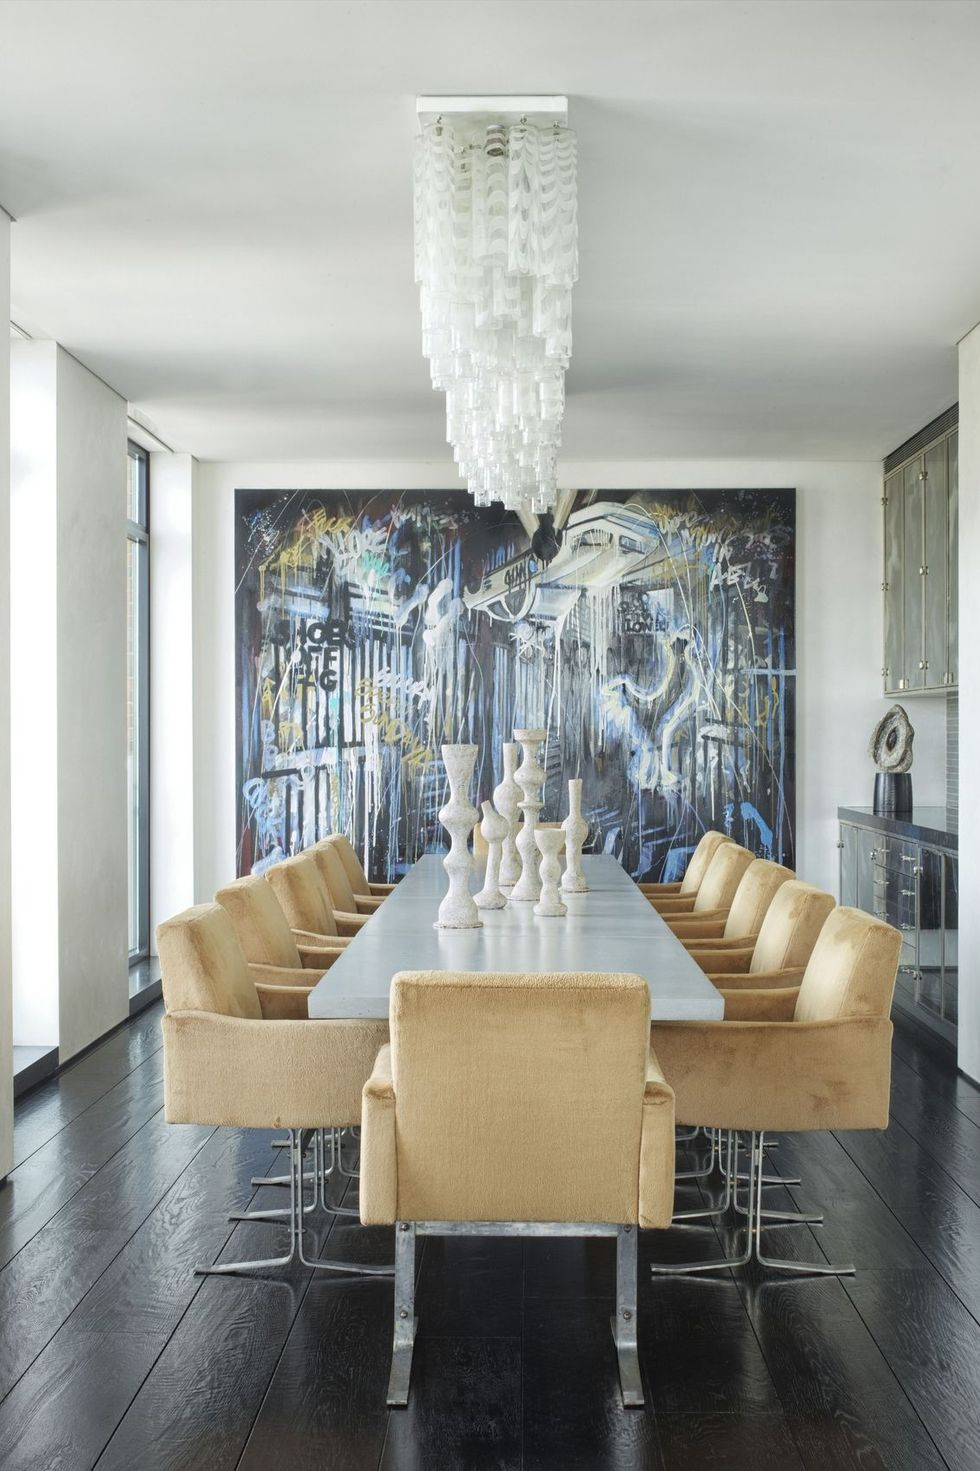 dining-room-light-fixtures-15-1502211540